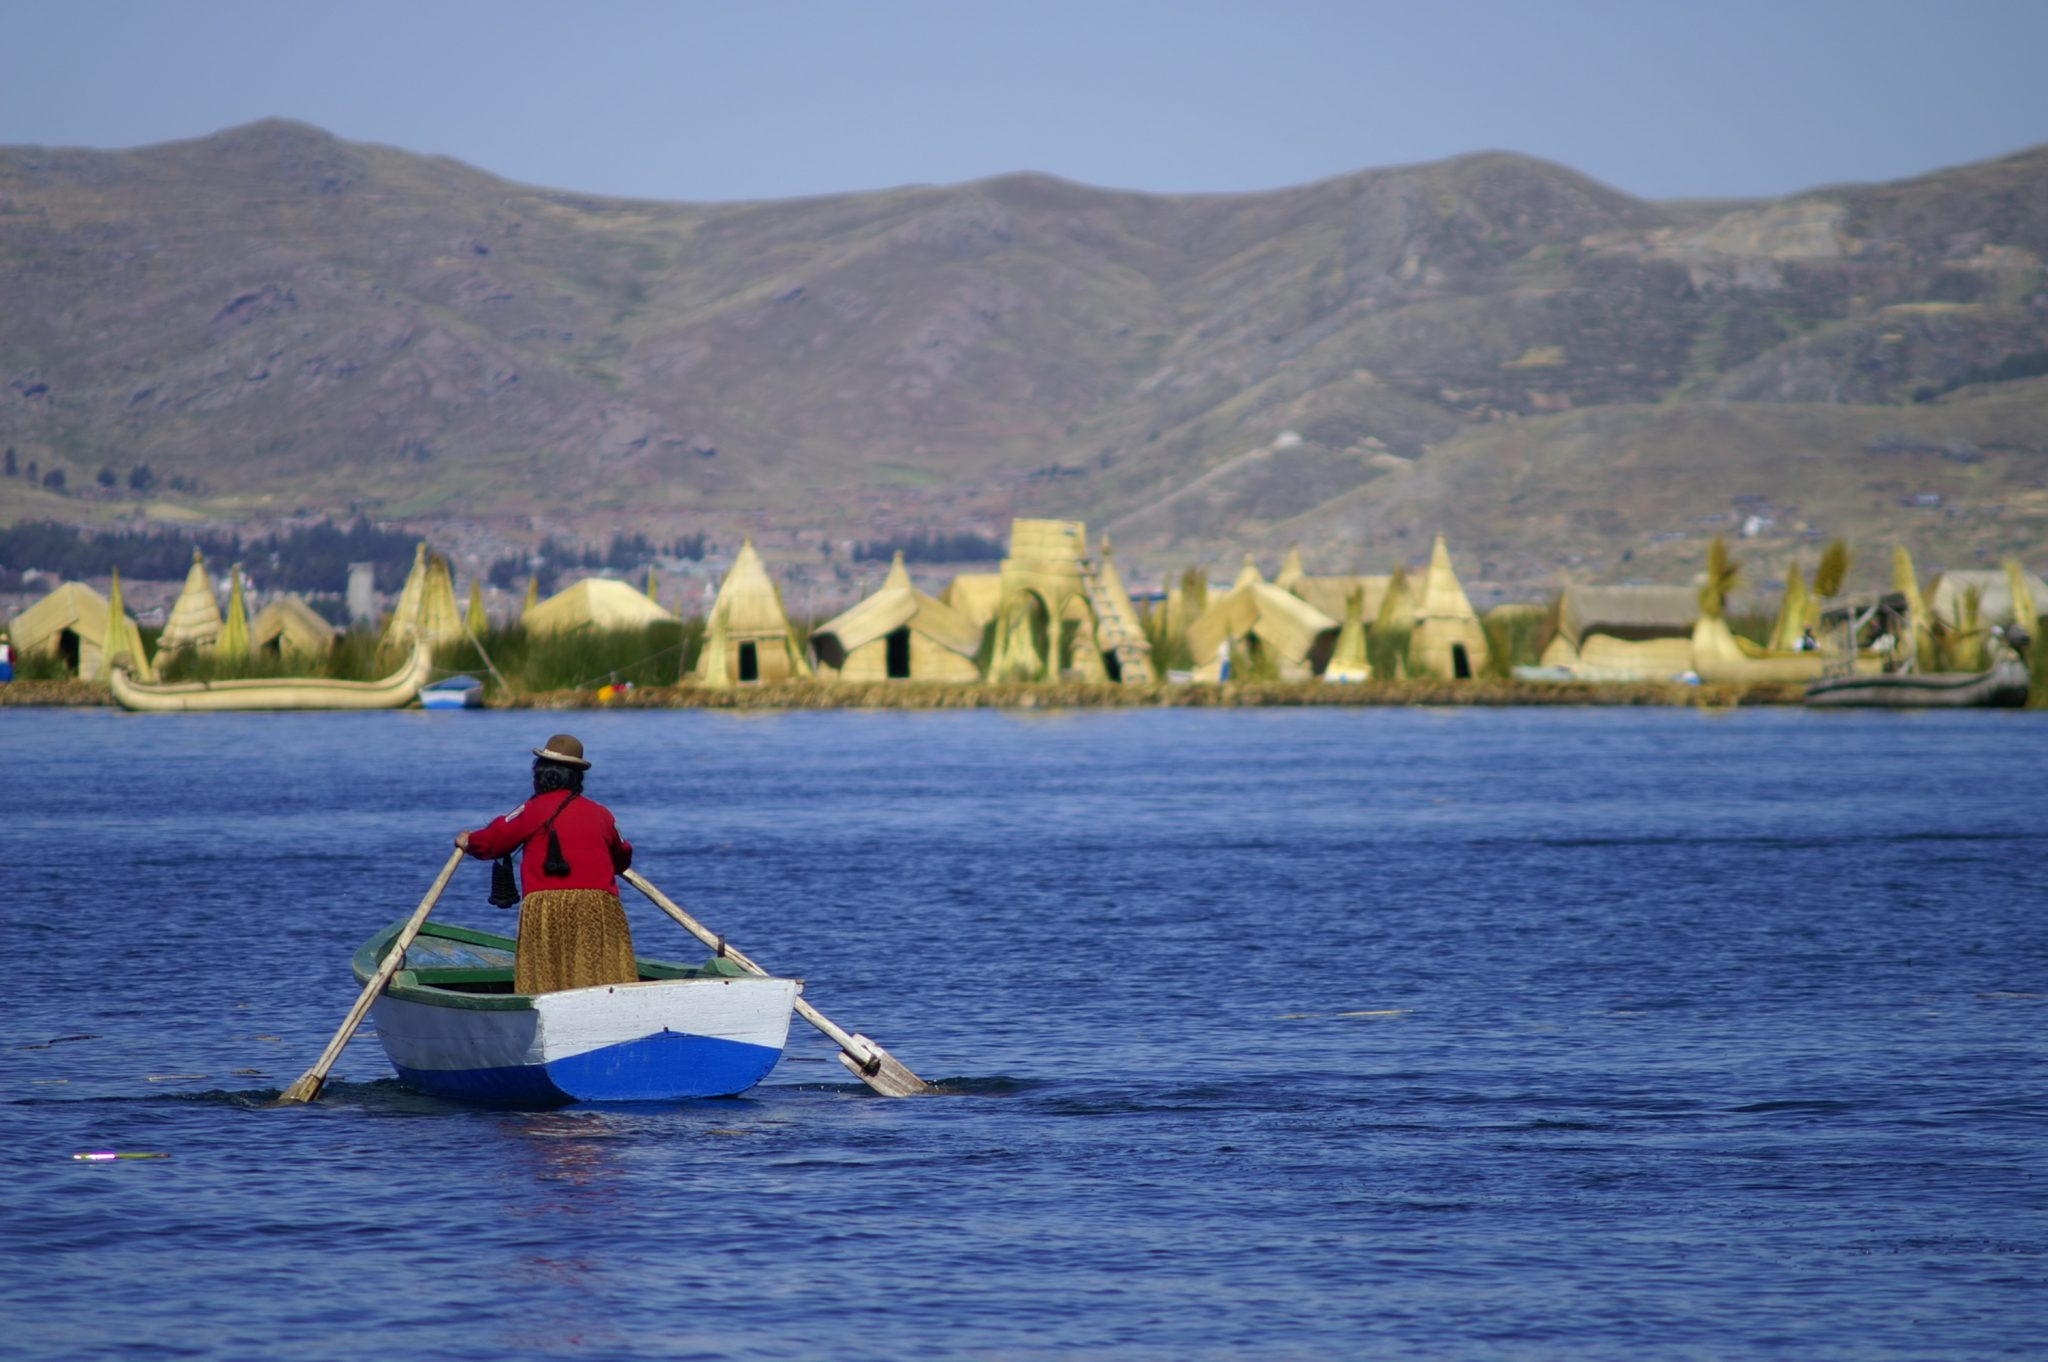 Uros Islands (Titicaca Lake), Peru